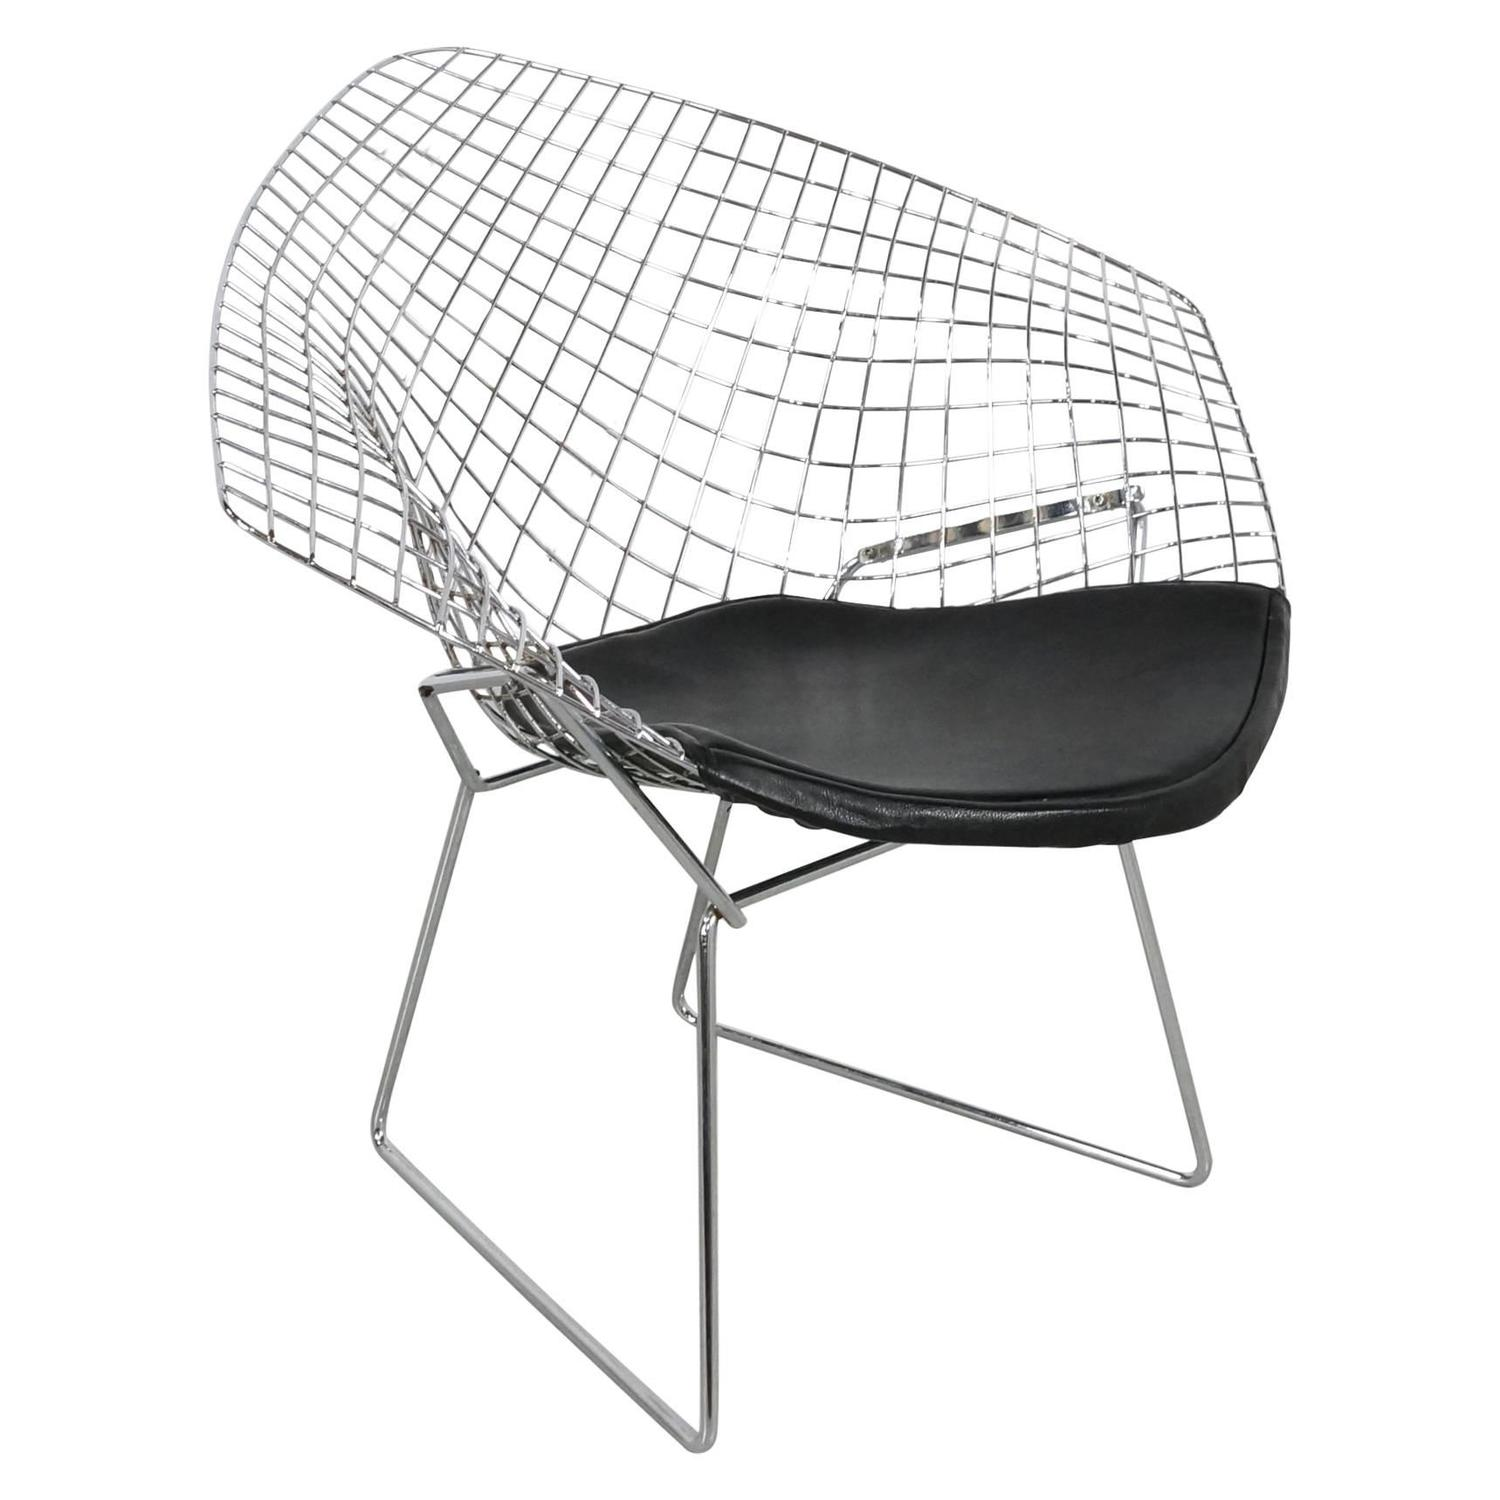 Chrome Diamond Chair by Harry Bertoia 1952 at 1stdibs